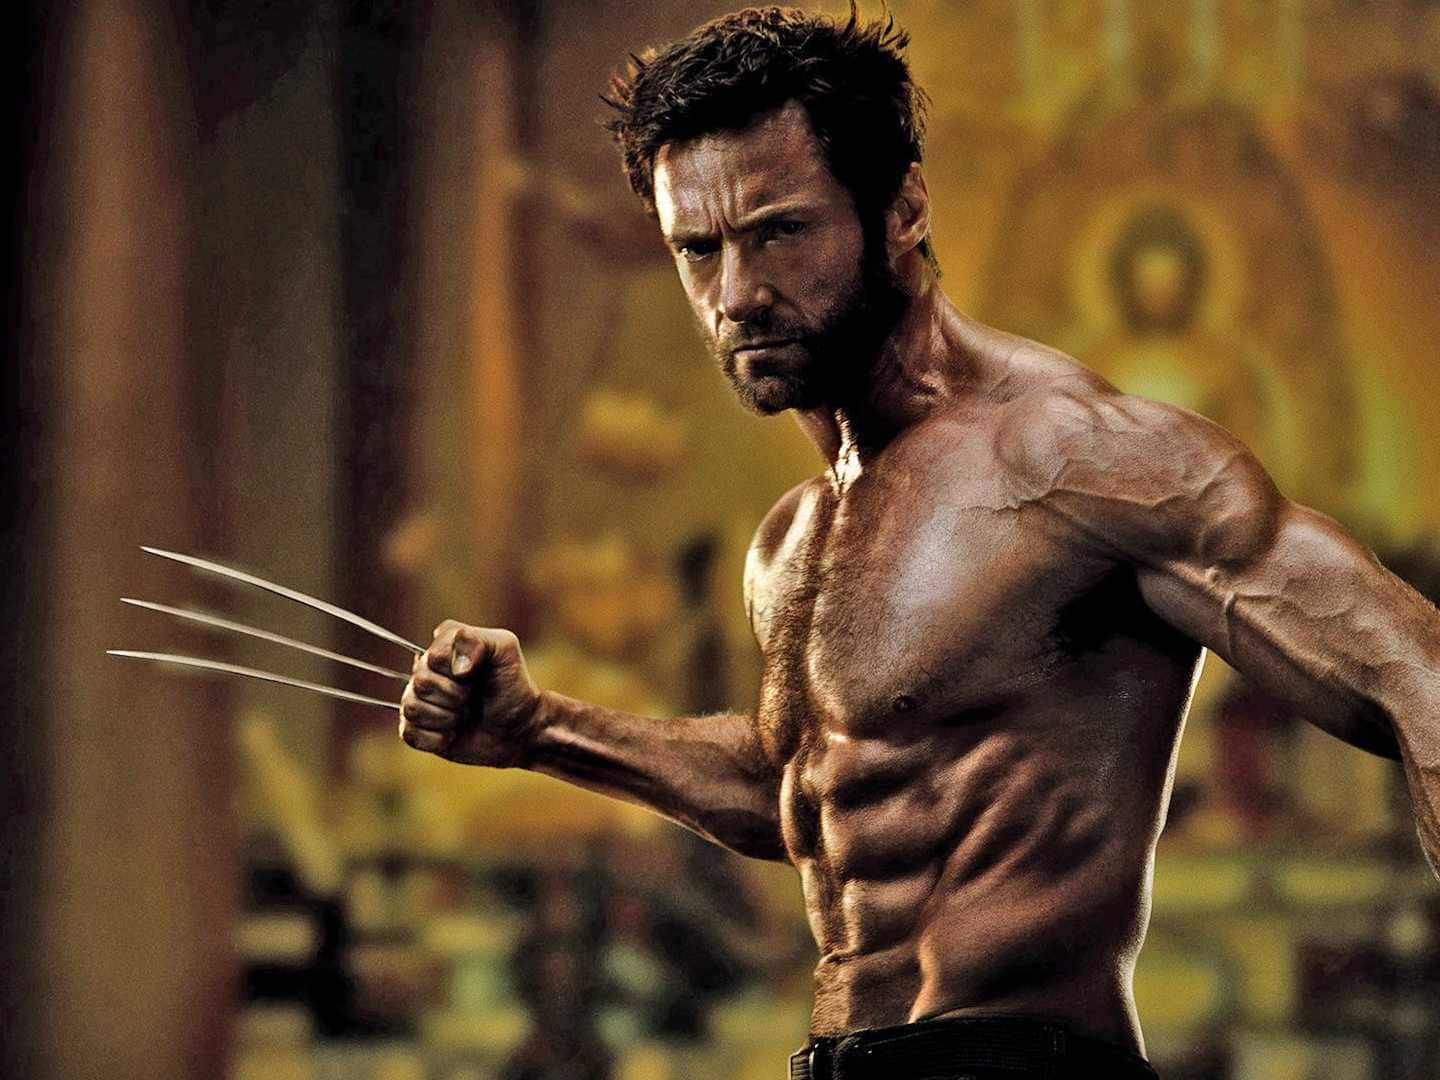 Hugh Jackman accepts any possible replacement of him as Wolverine